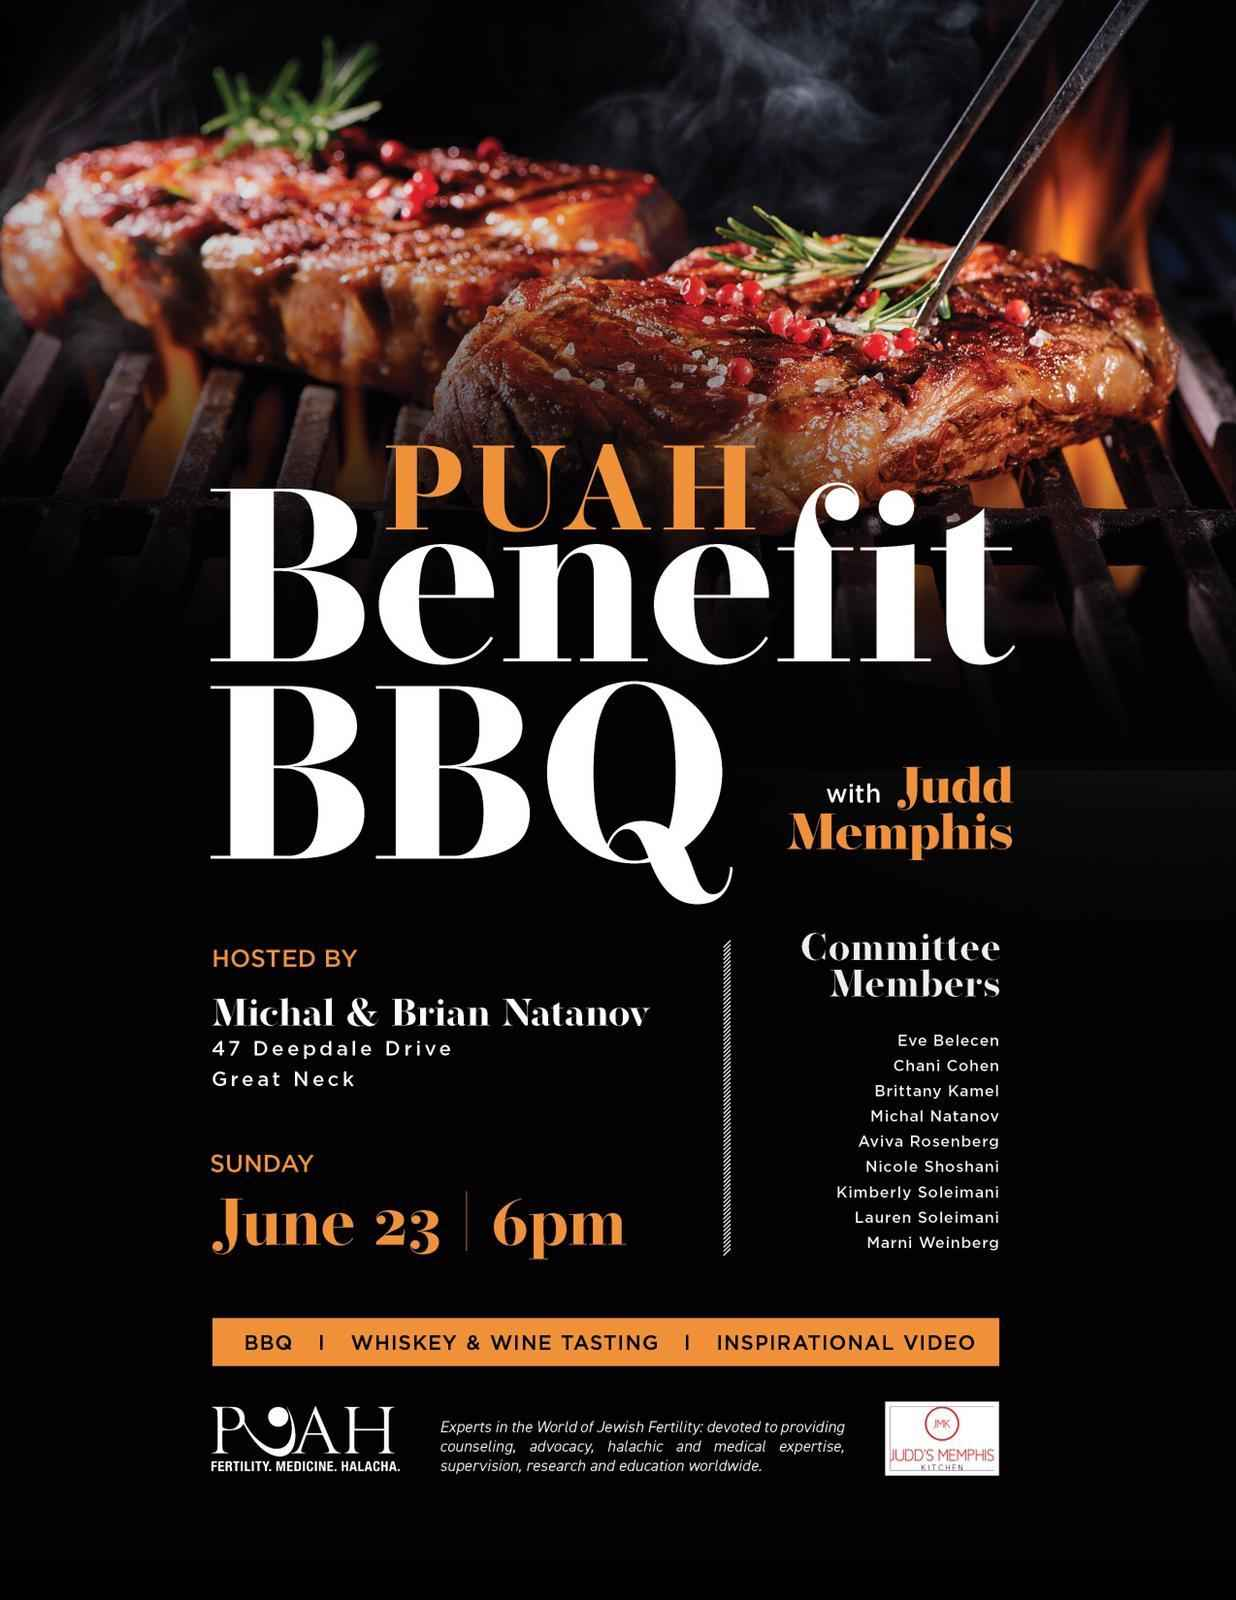 Great Neck PUAH benefit BBQ image